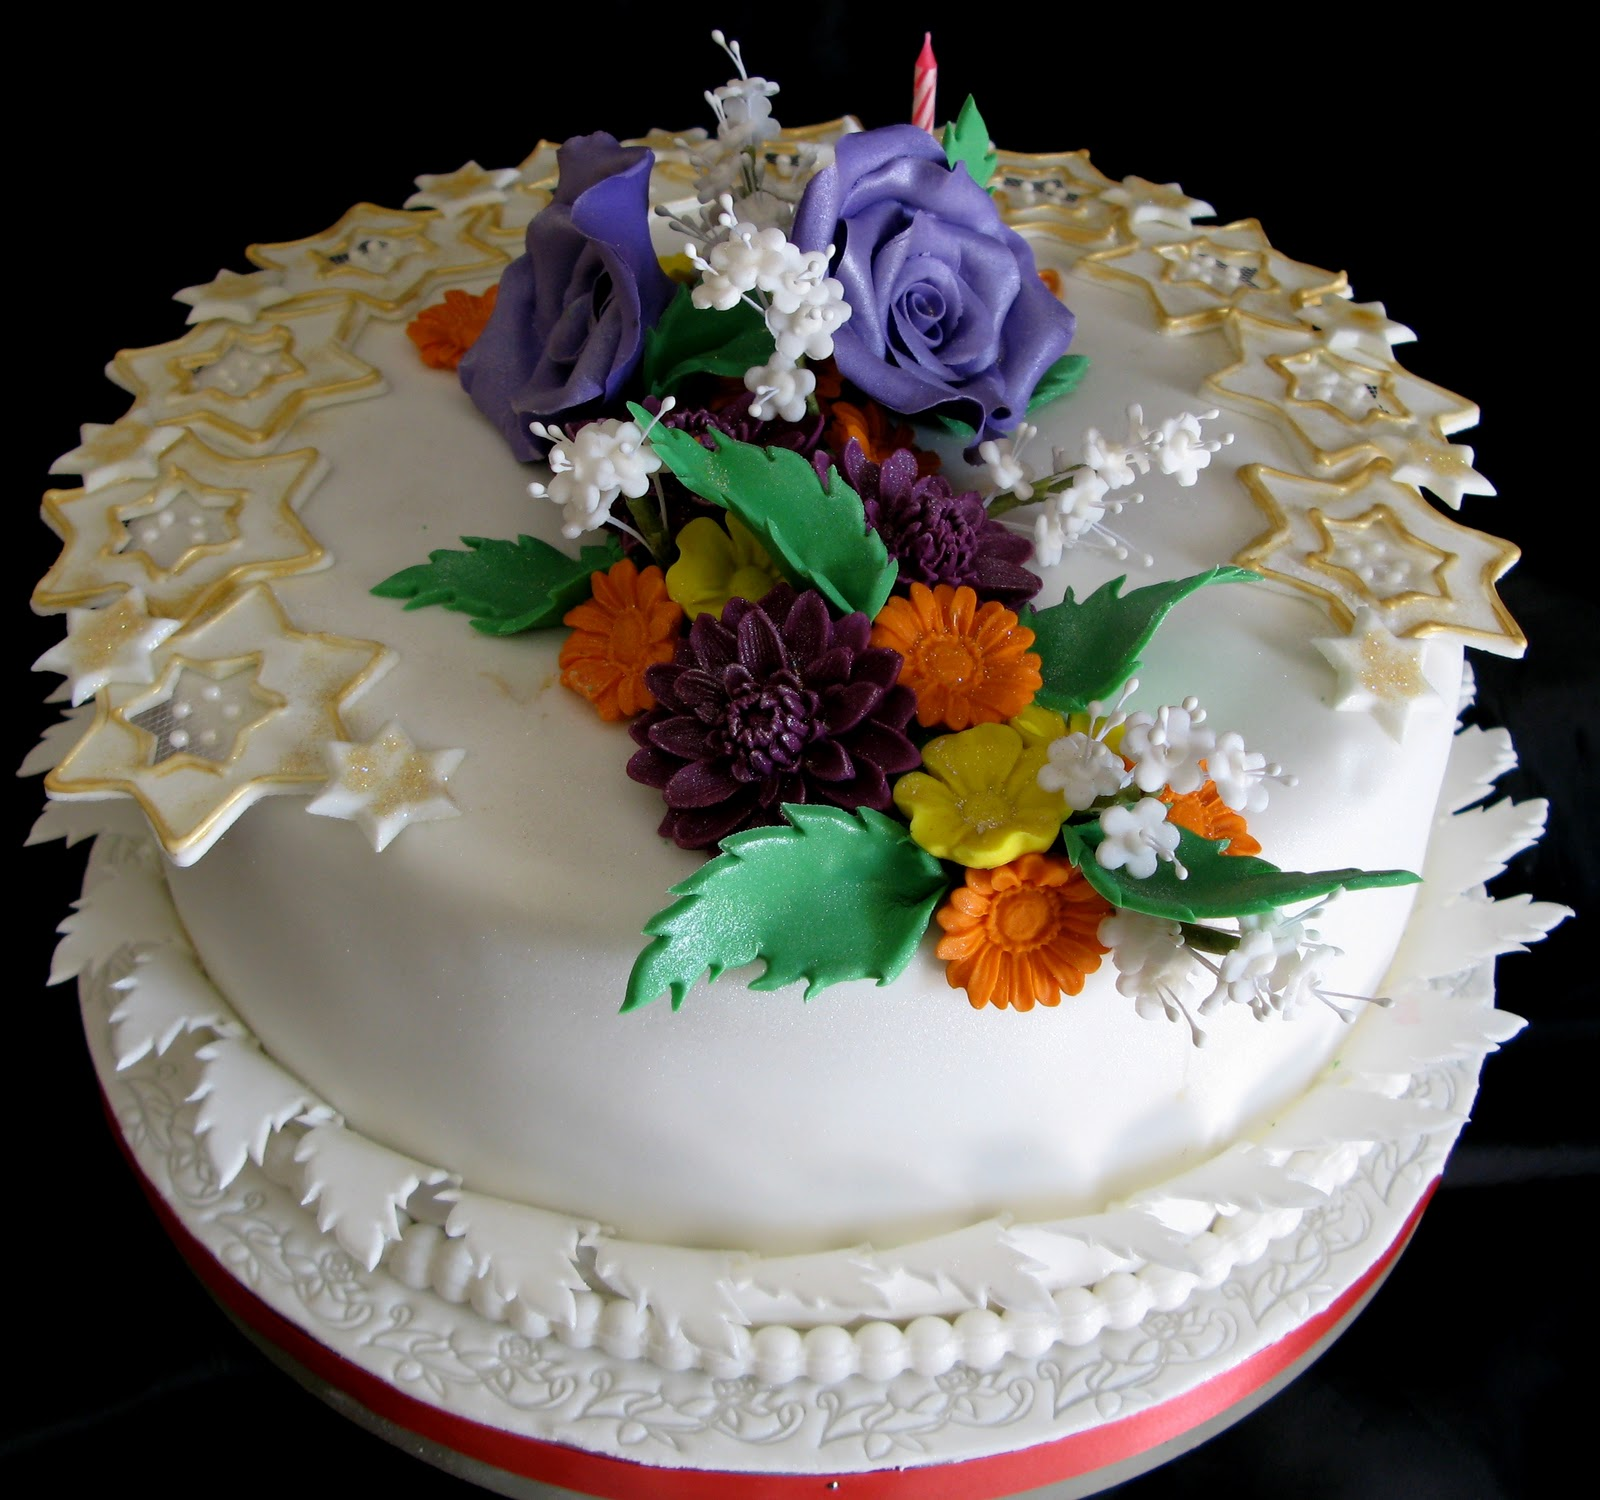 Special Cake Images Download : cakeplusgift images bdaycakesenior2011.JPG HD wallpaper ...